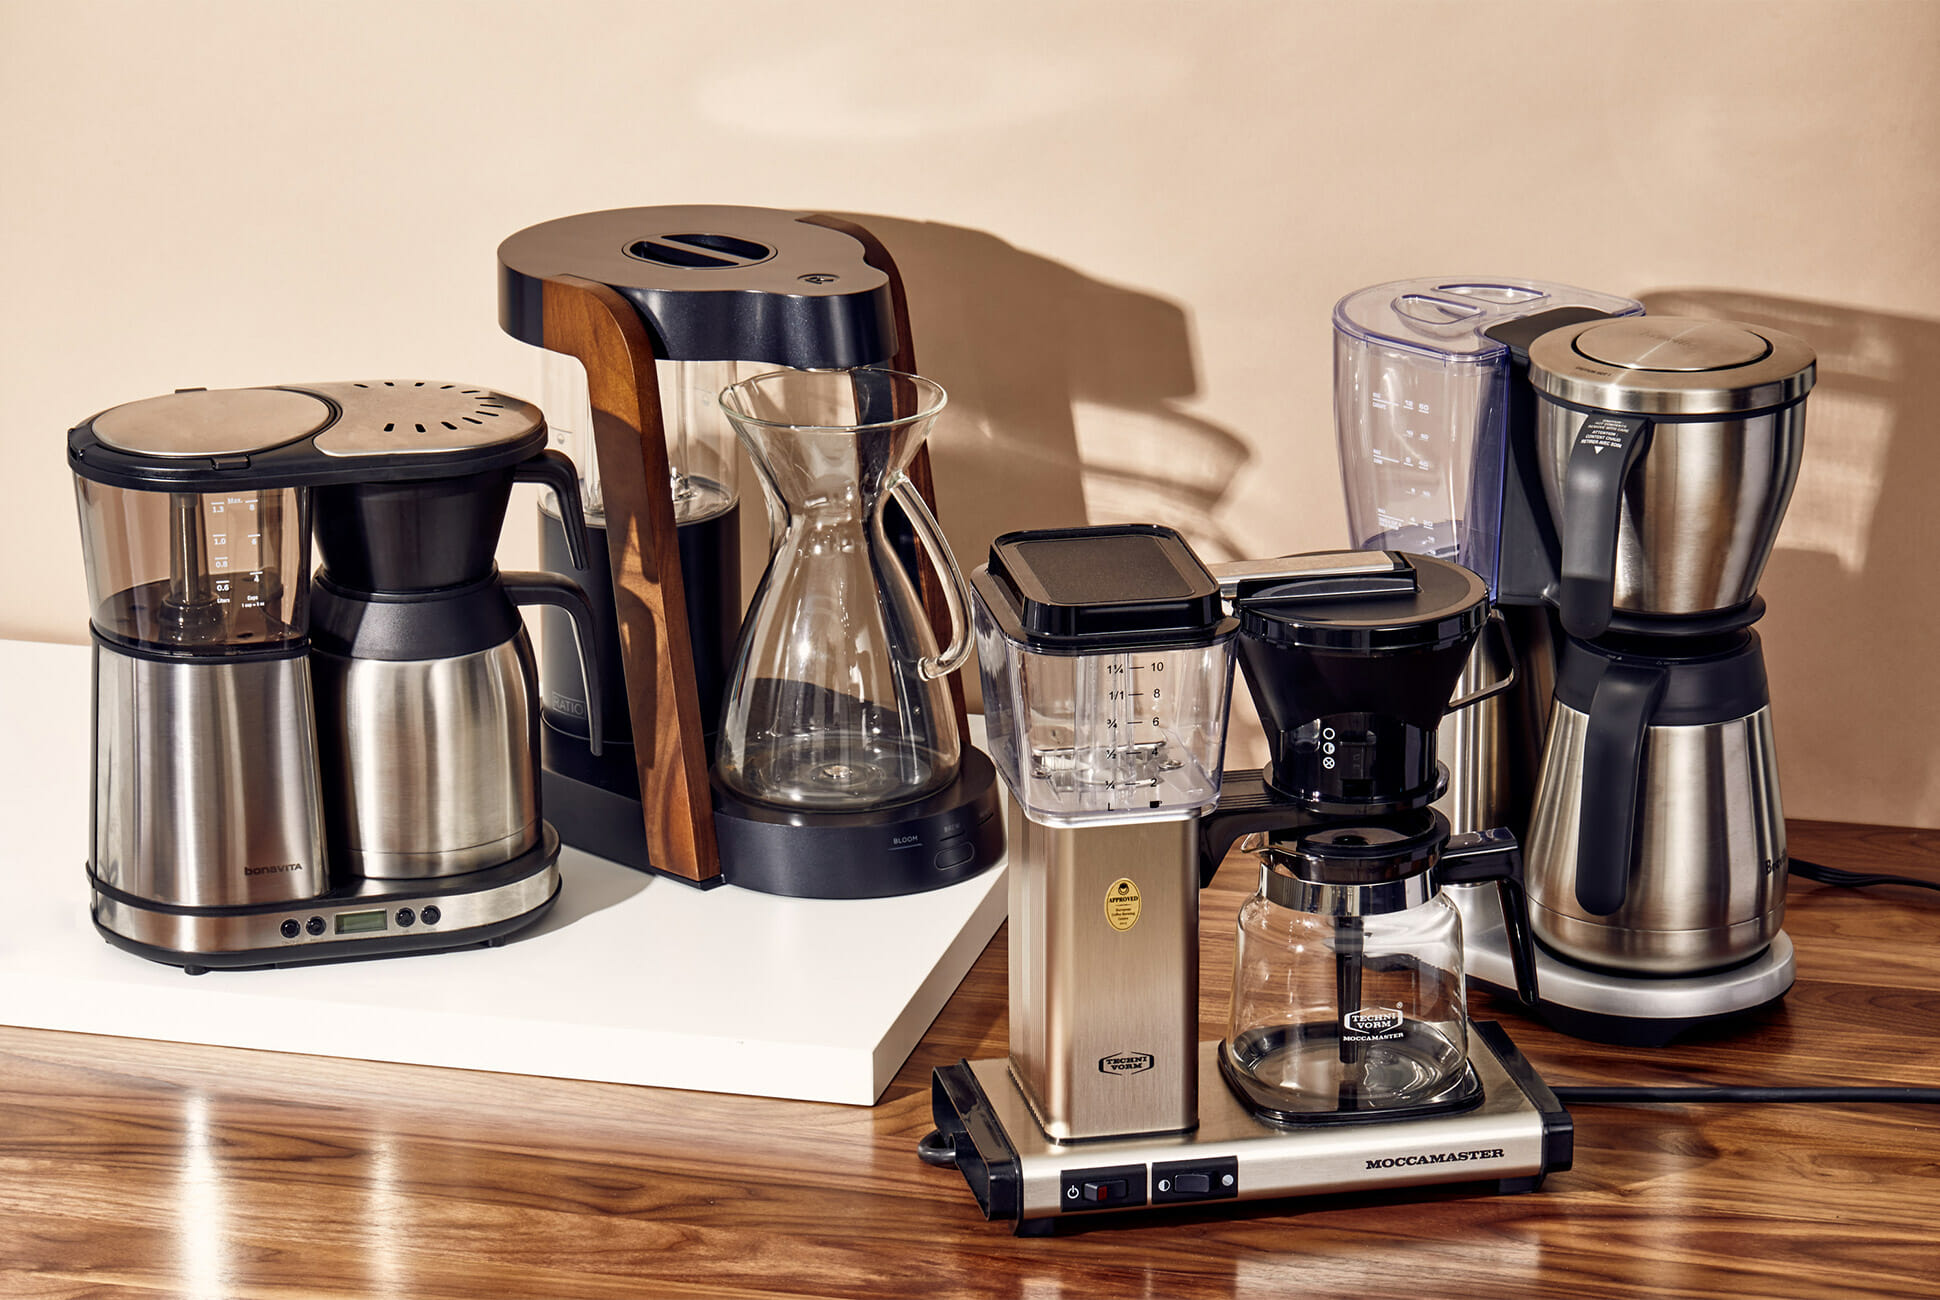 10 Best Affordable Coffee Maker 2020 - Do Not Buy Before Reading This!